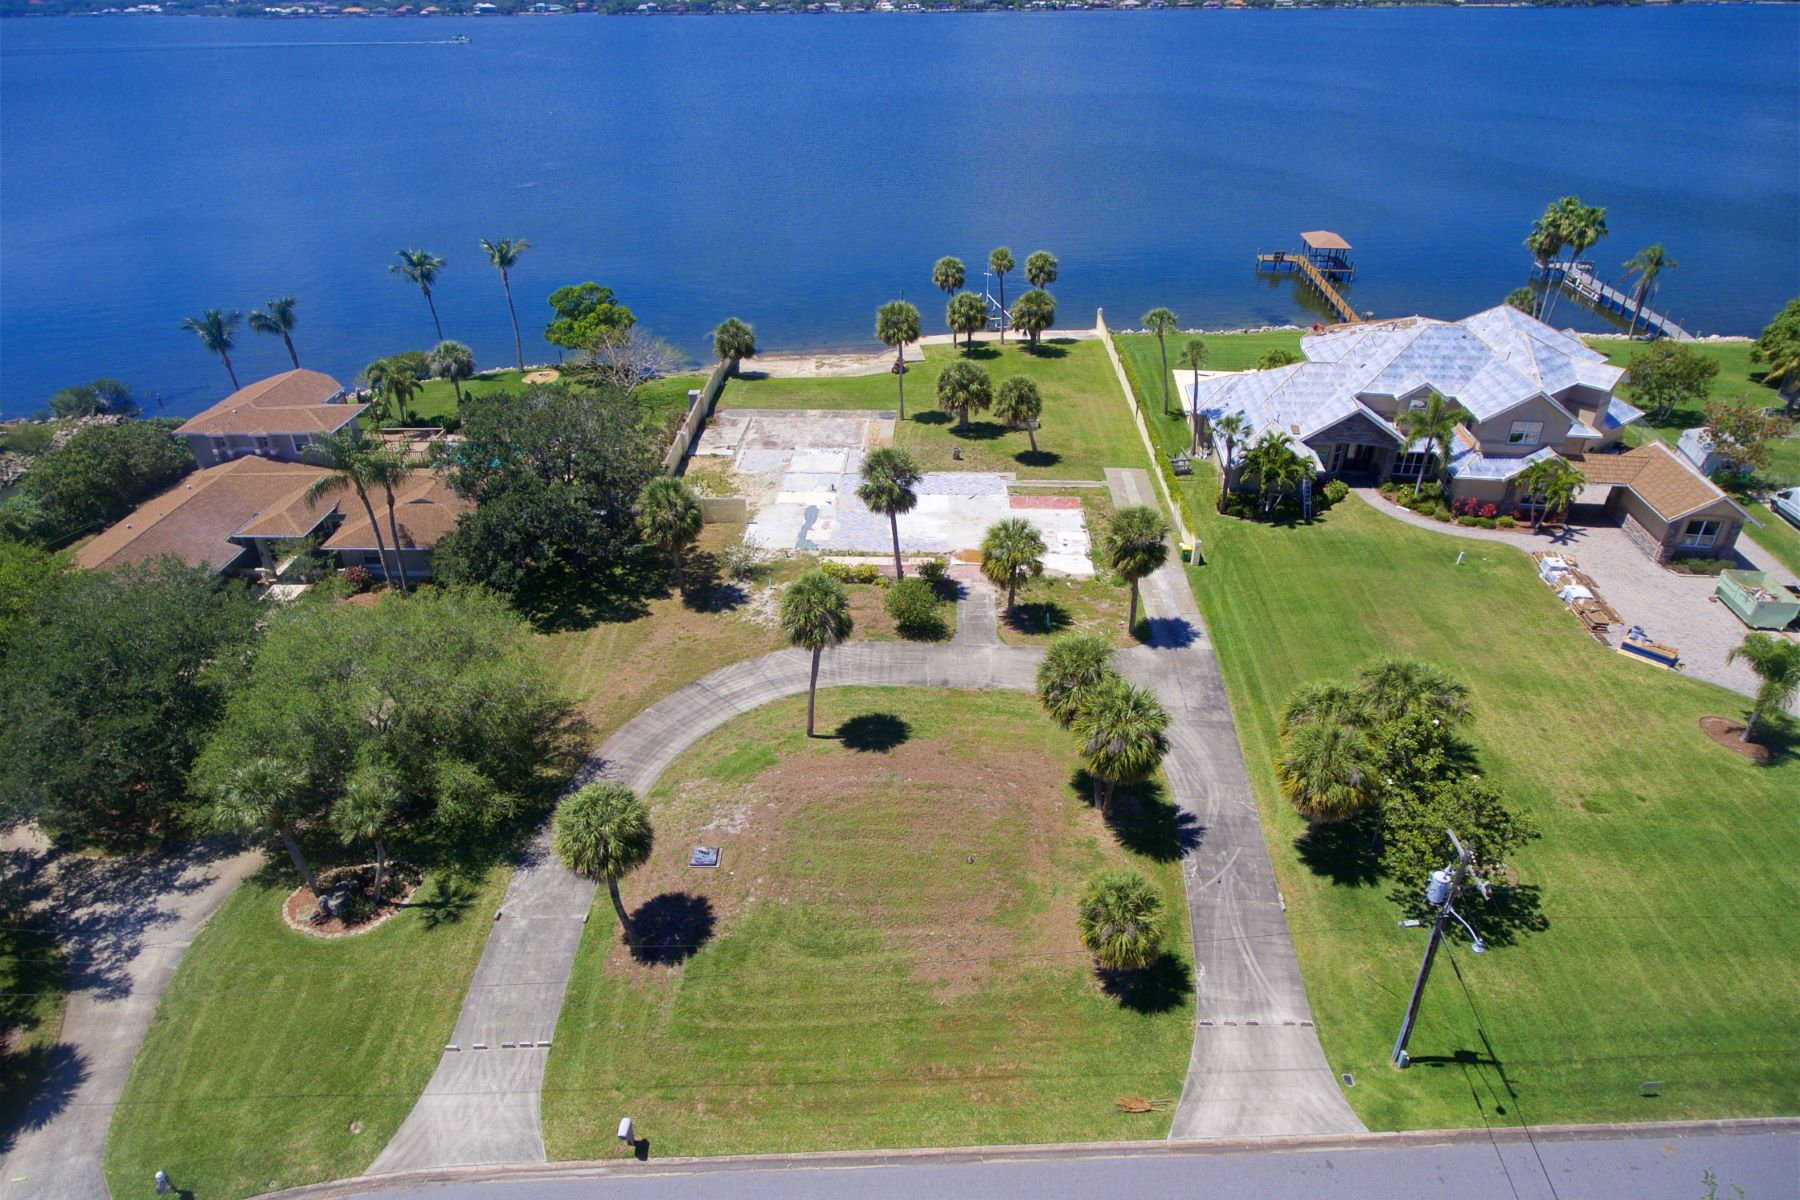 토지 용 매매 에 Premium Waterfront Homesite in Convenient and Manicured Tequesta Harbor 196 Tequesta Harbor Drive Merritt Island, 플로리다 32952 미국